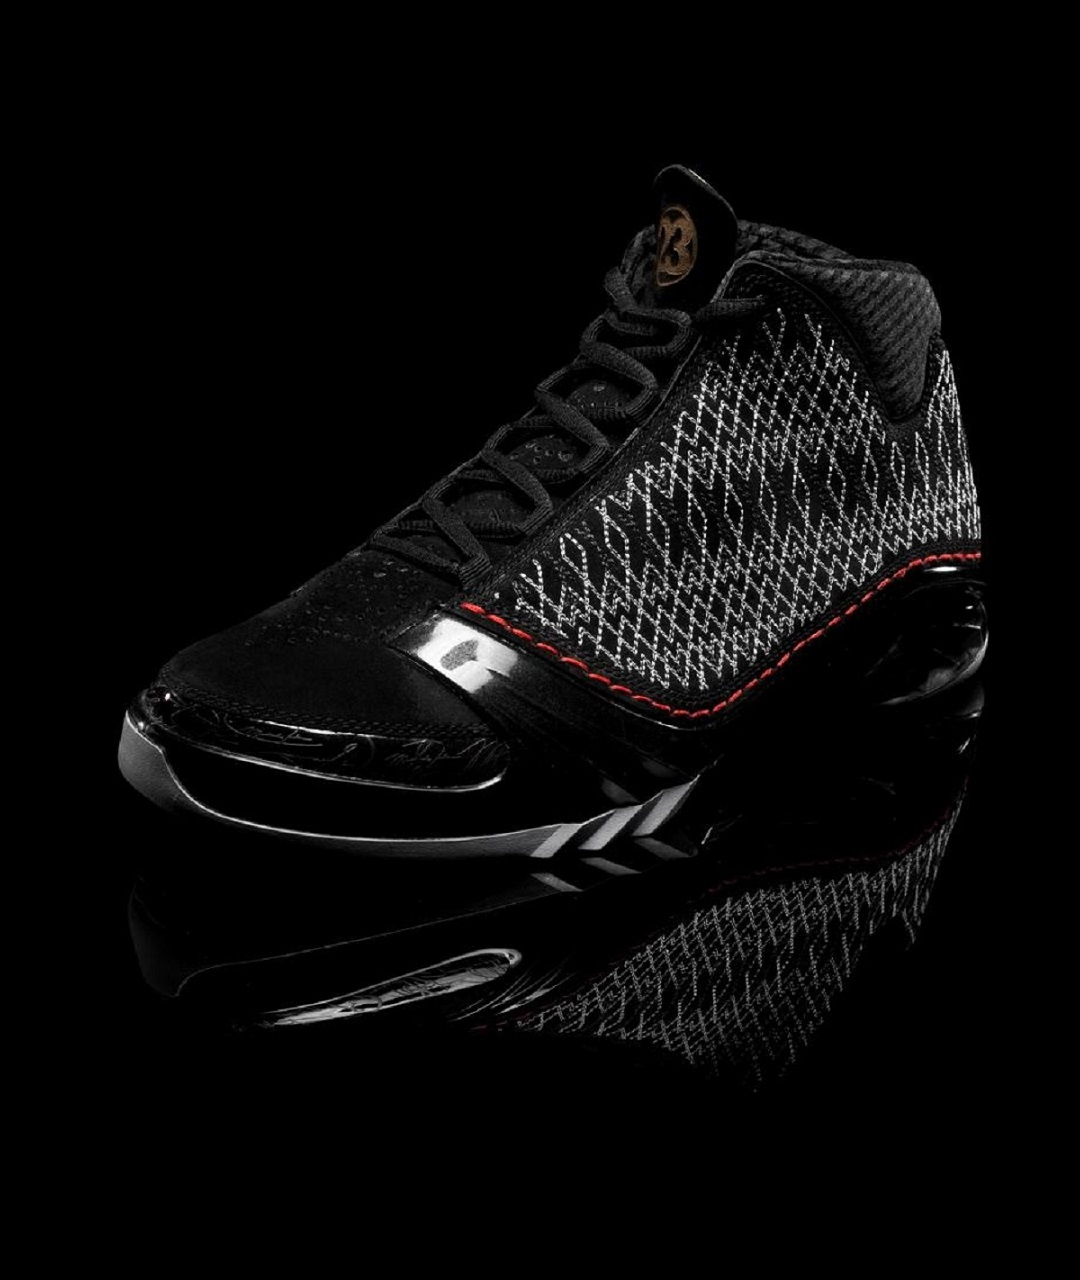 cec663313b61 It has the lowest-profile midsole of any of the Air Jordans